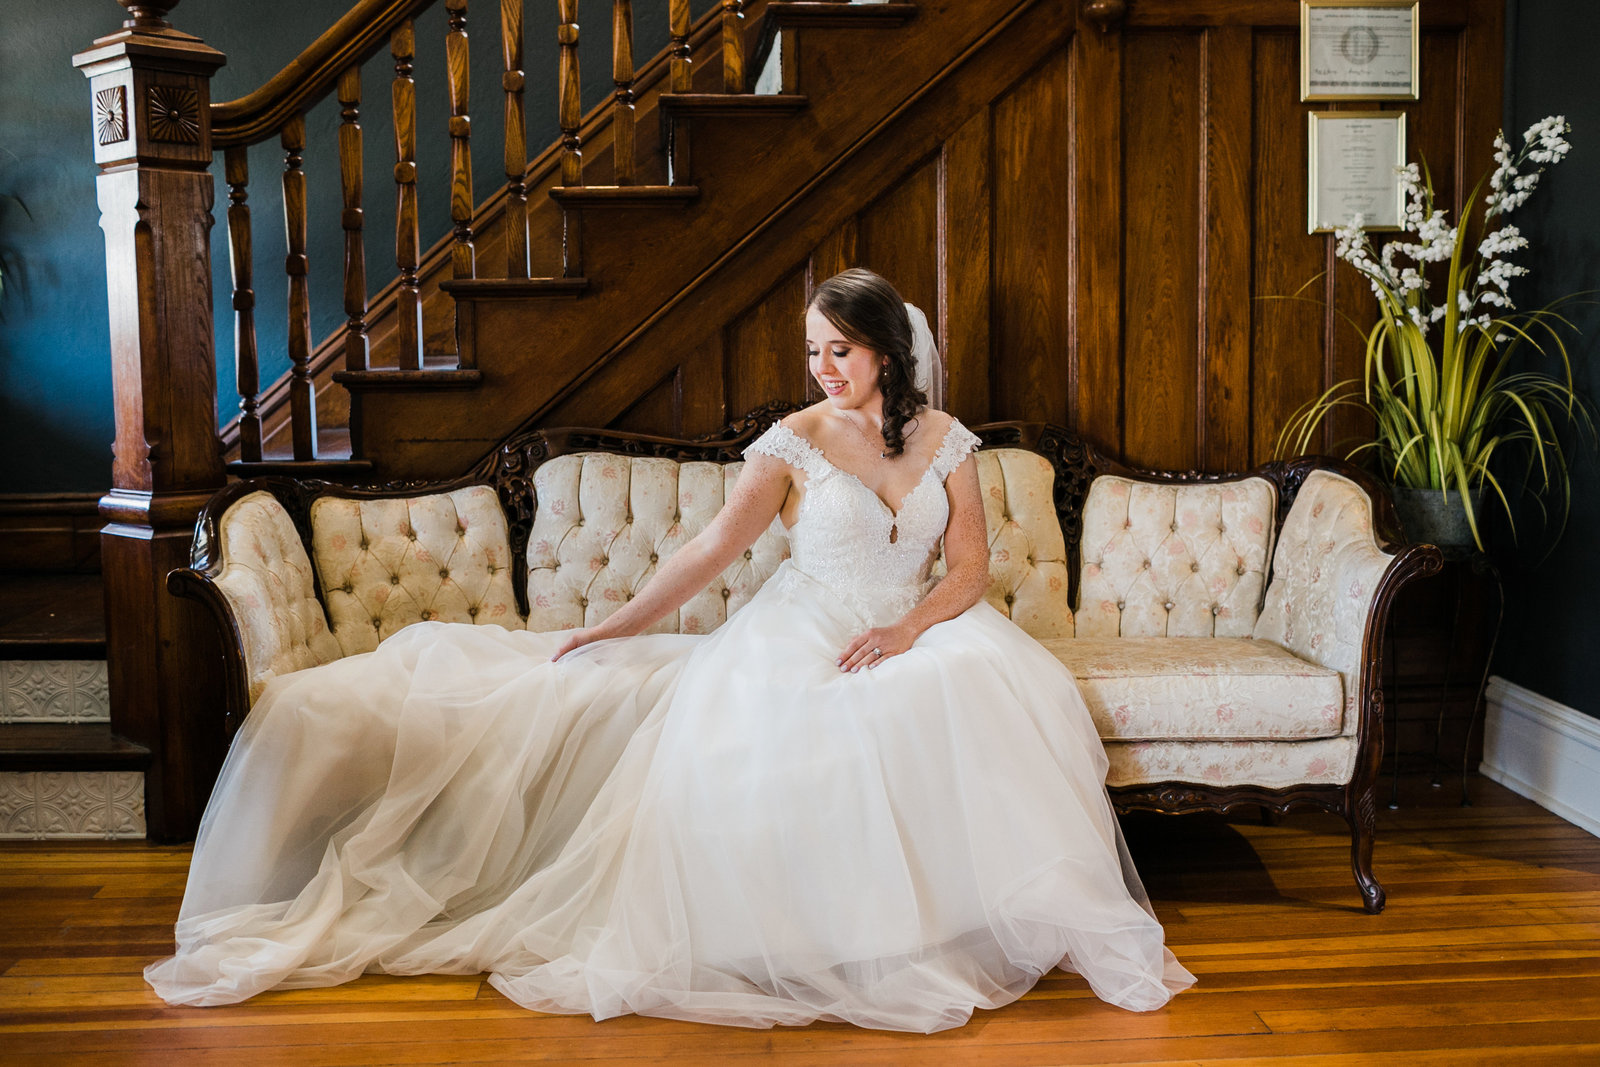 Bride, Joey, poses on a vintage couch after putting on her wedding dress. Her train drapes across the couch onto the ground.